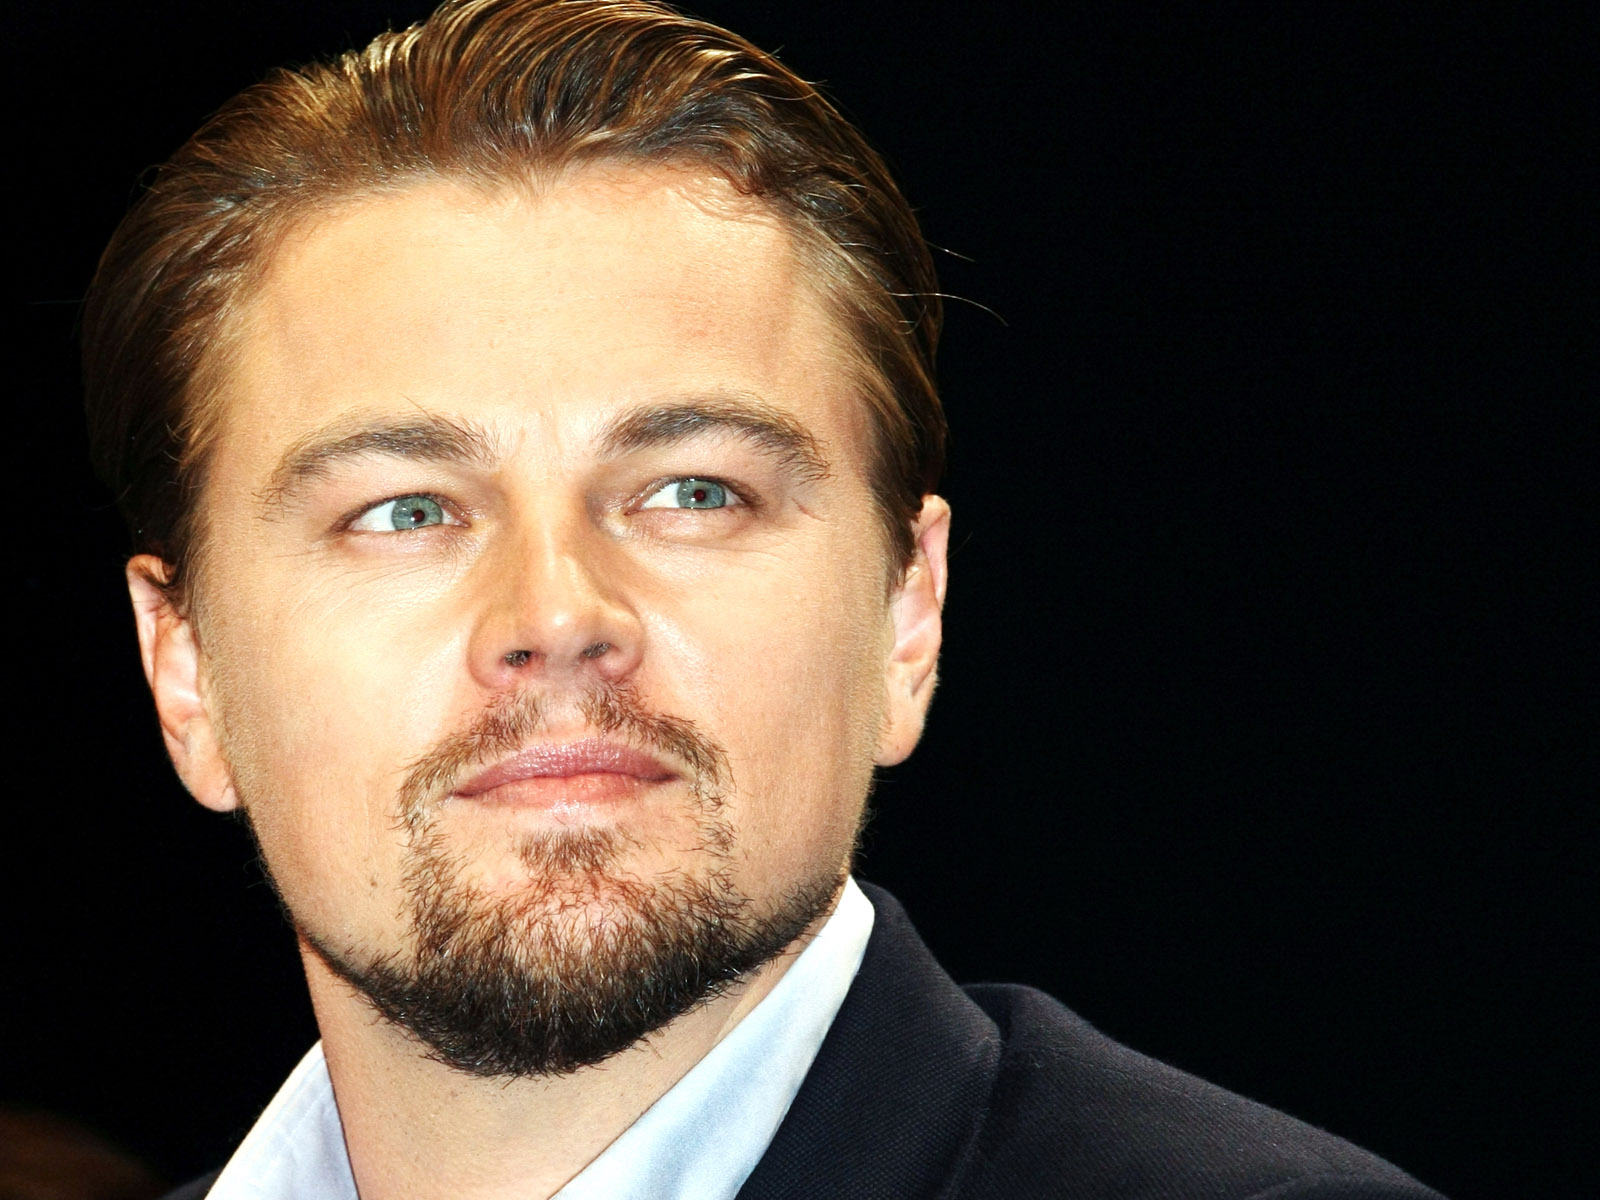 http://4.bp.blogspot.com/-pxPYJ71187w/TtcGGSKIzZI/AAAAAAAAAb4/HASA0bK4o-4/s1600/Leonardo-DiCaprio-pictures-desktop-Wallpapers-HD-photo-images-24.jpg